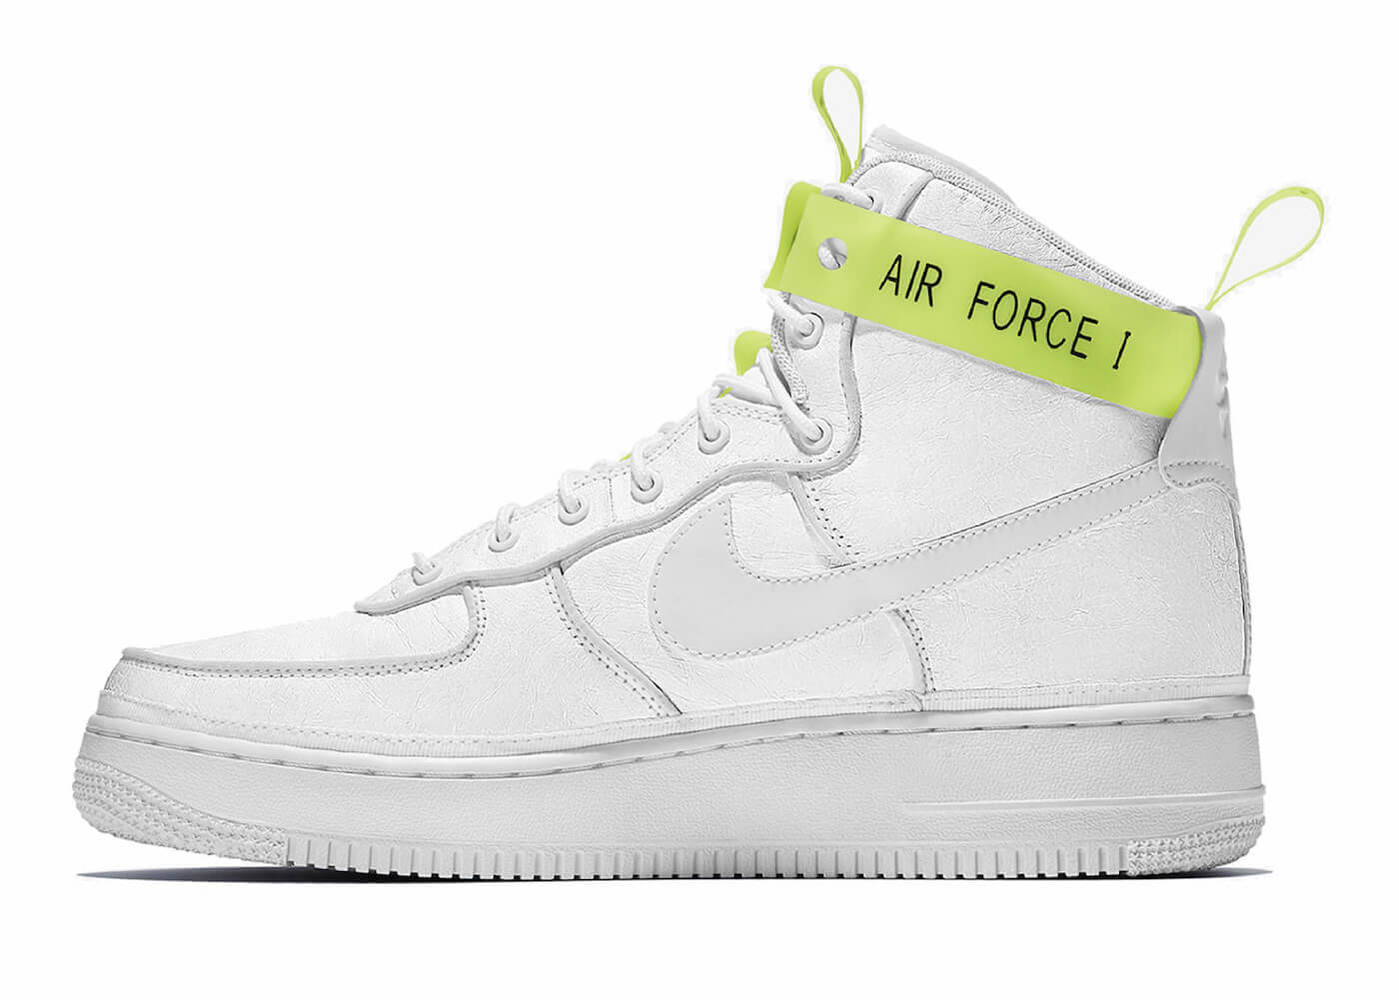 AIR FORCE 1 HIGH MAGIC STICK VIPの写真